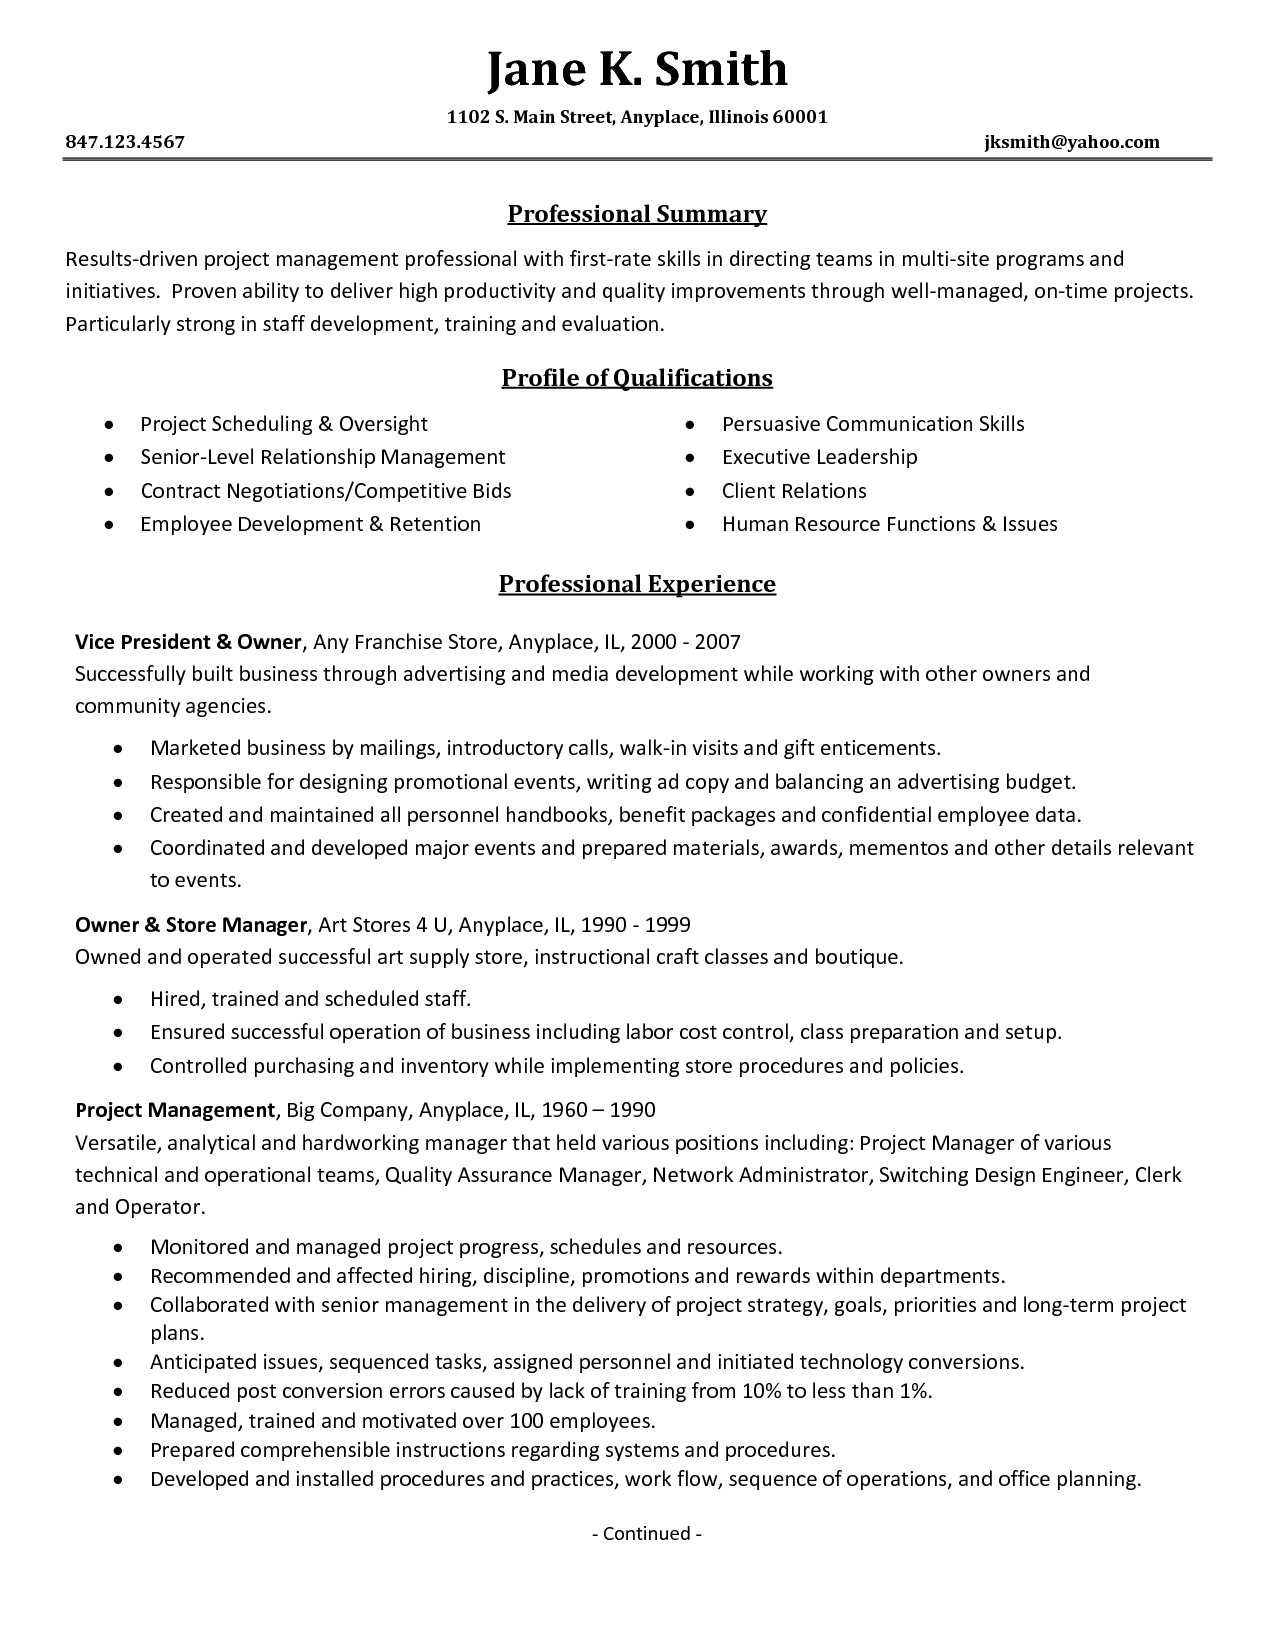 Skill Resume Template Leadership Skills Resume Leadership Skills Resume Template…  Job